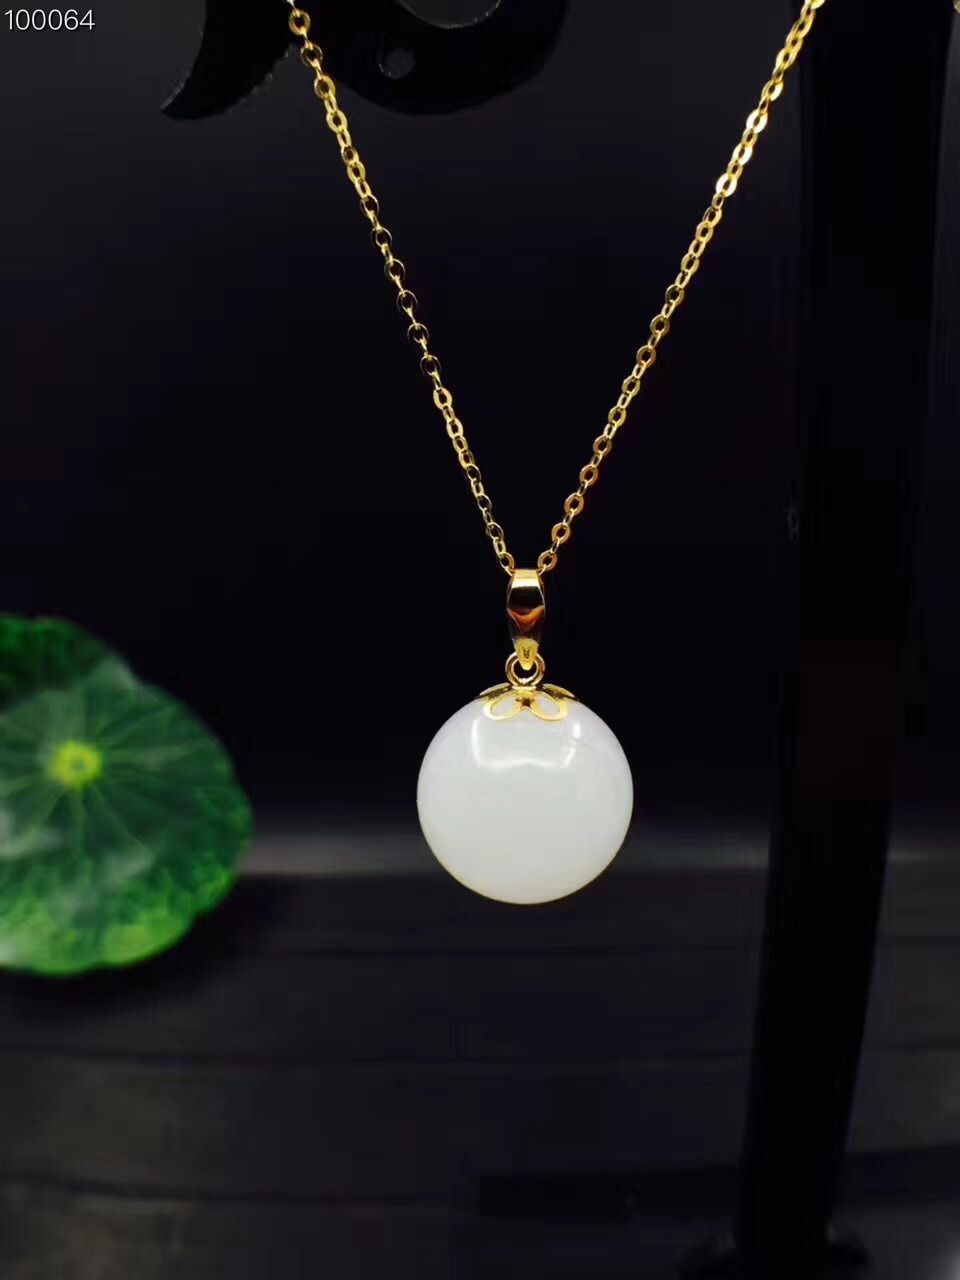 Fidelity natural 12.5mm white Hetian jade pendants & 18k yellow gold simple fine jewelry for women party natural gemstone fine jewelry collection real 18k white gold natural green jade gemstone animal shape pendant necklace fine pendants